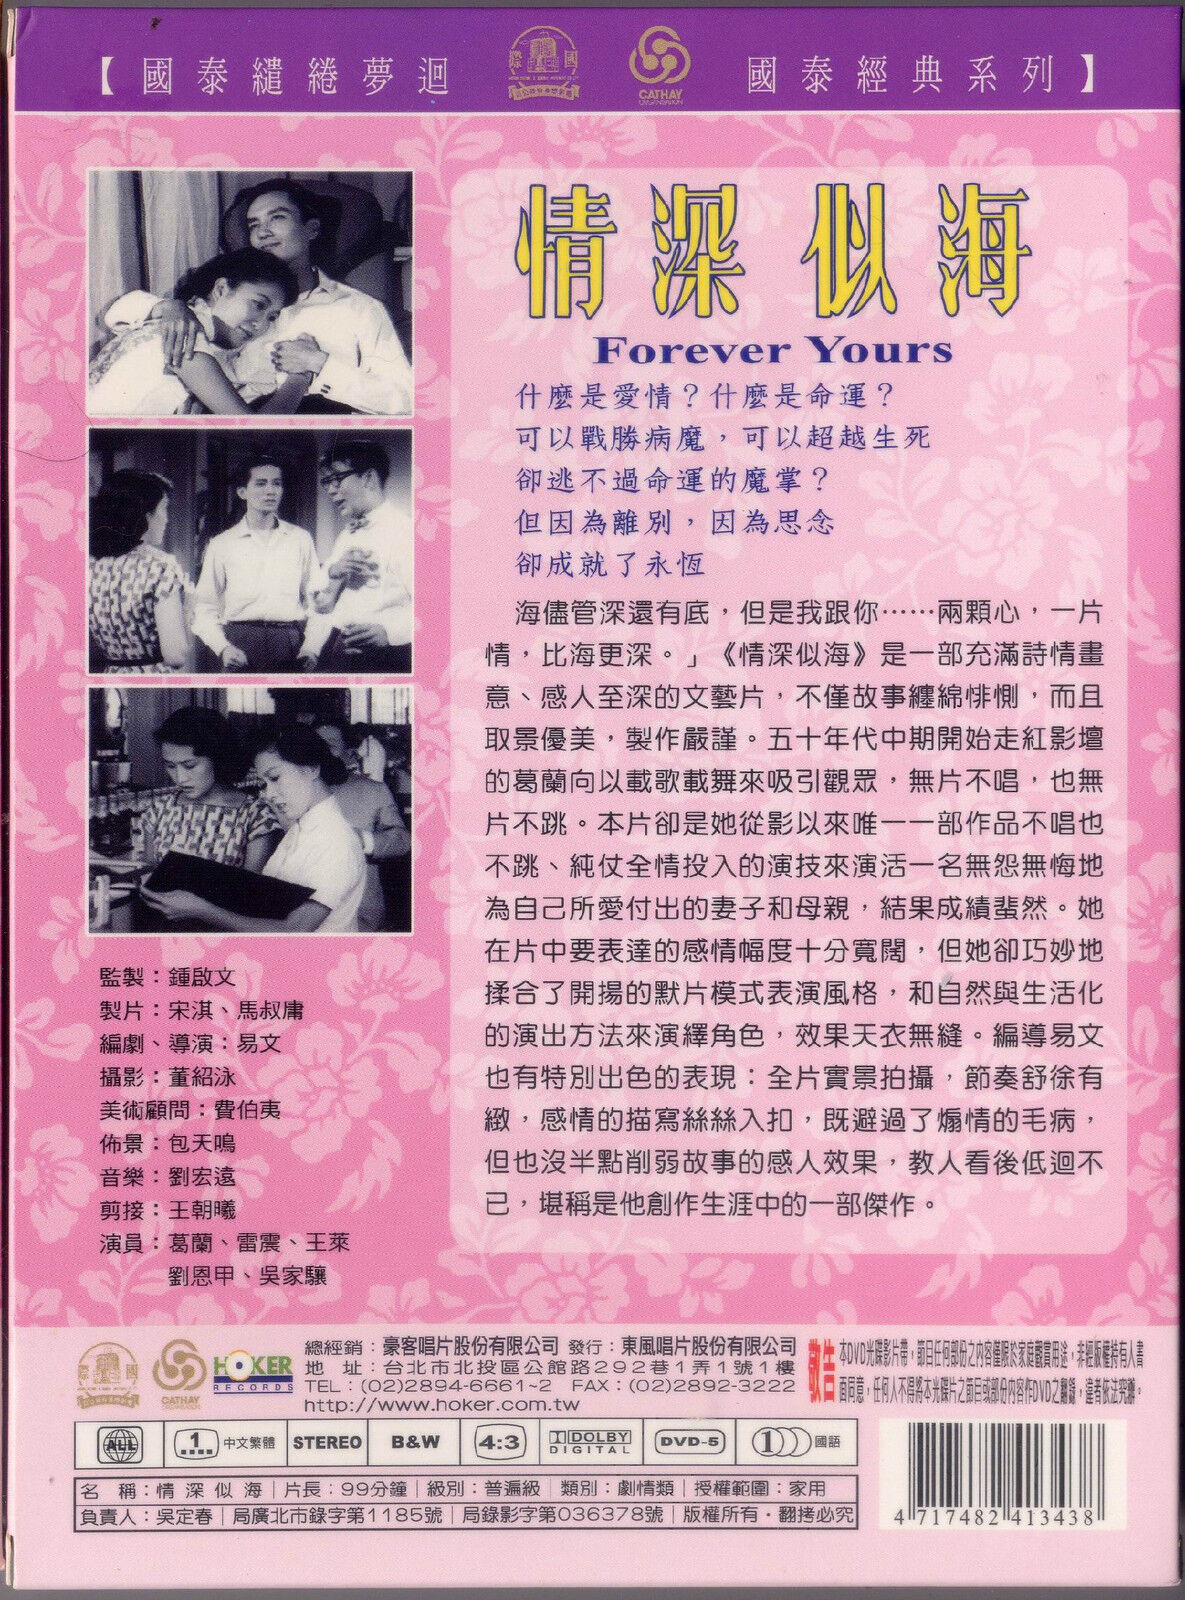 cathay: forever yours (情深似海 / hk 1960) dvd taiwan english